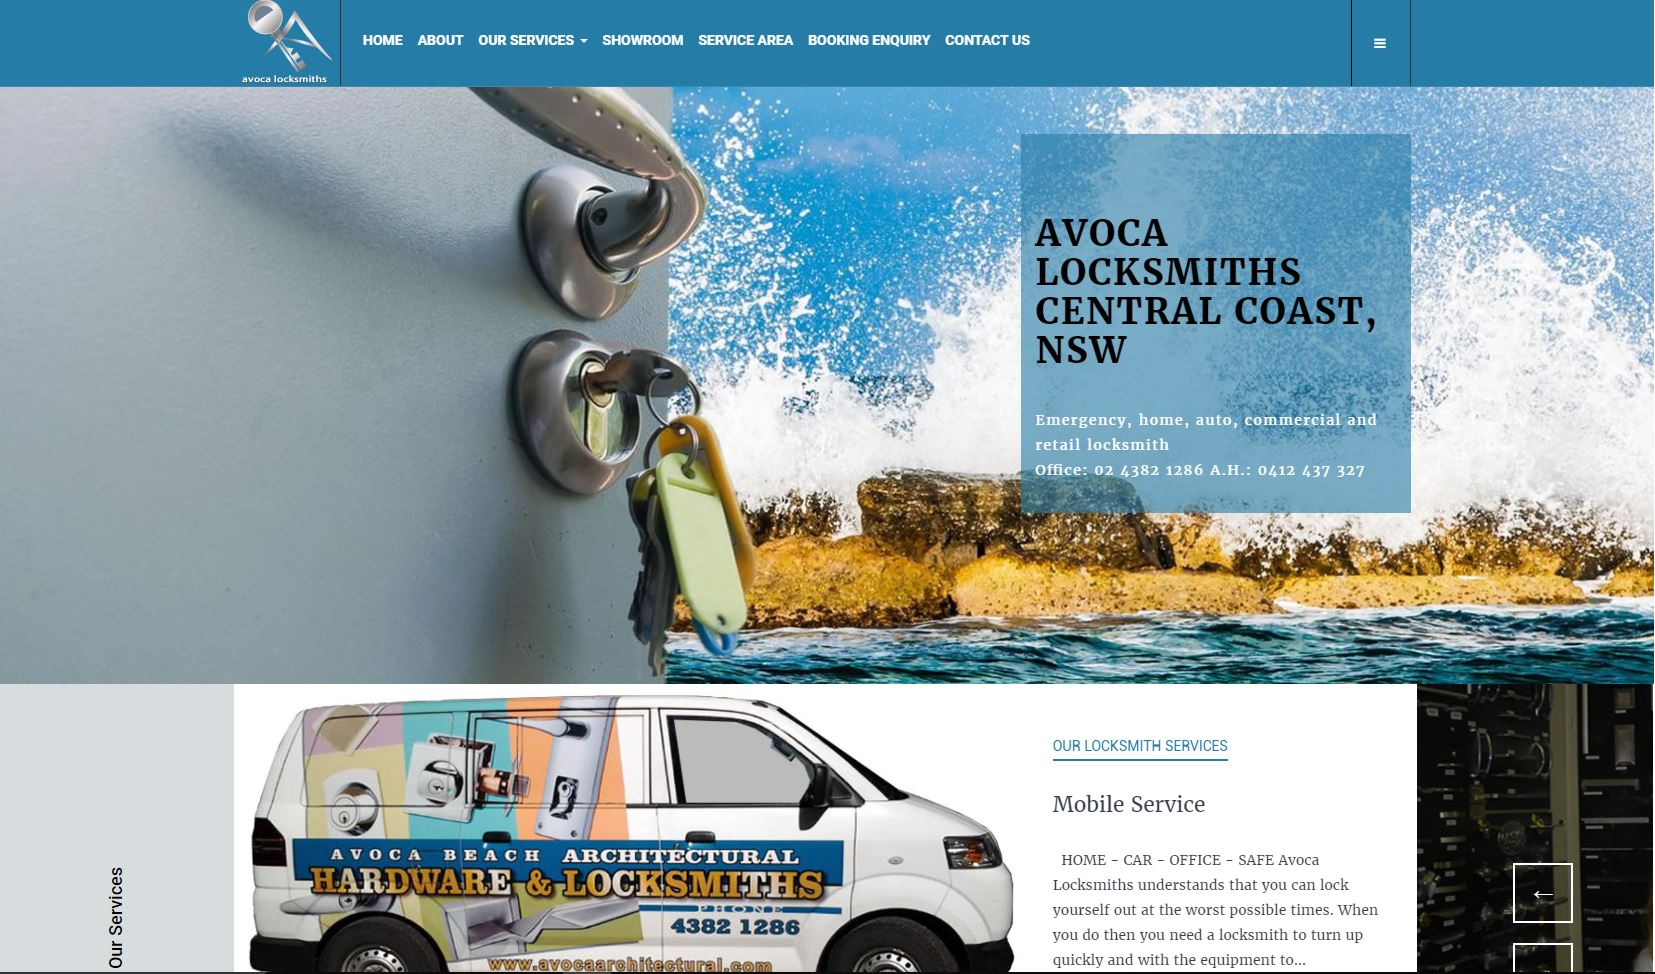 Avoca Locksmiths